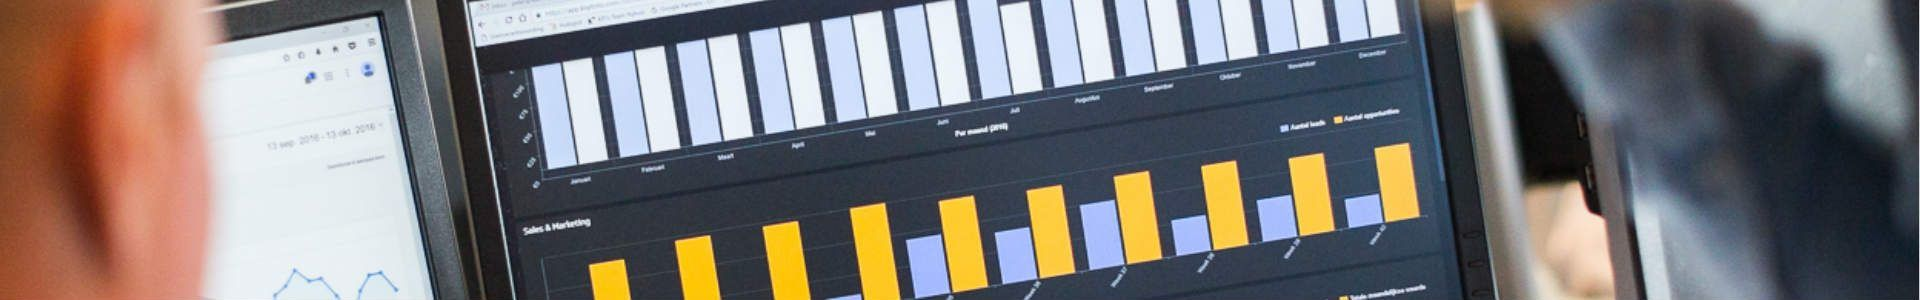 Gratis dashboards om te integreren met Google Analytics